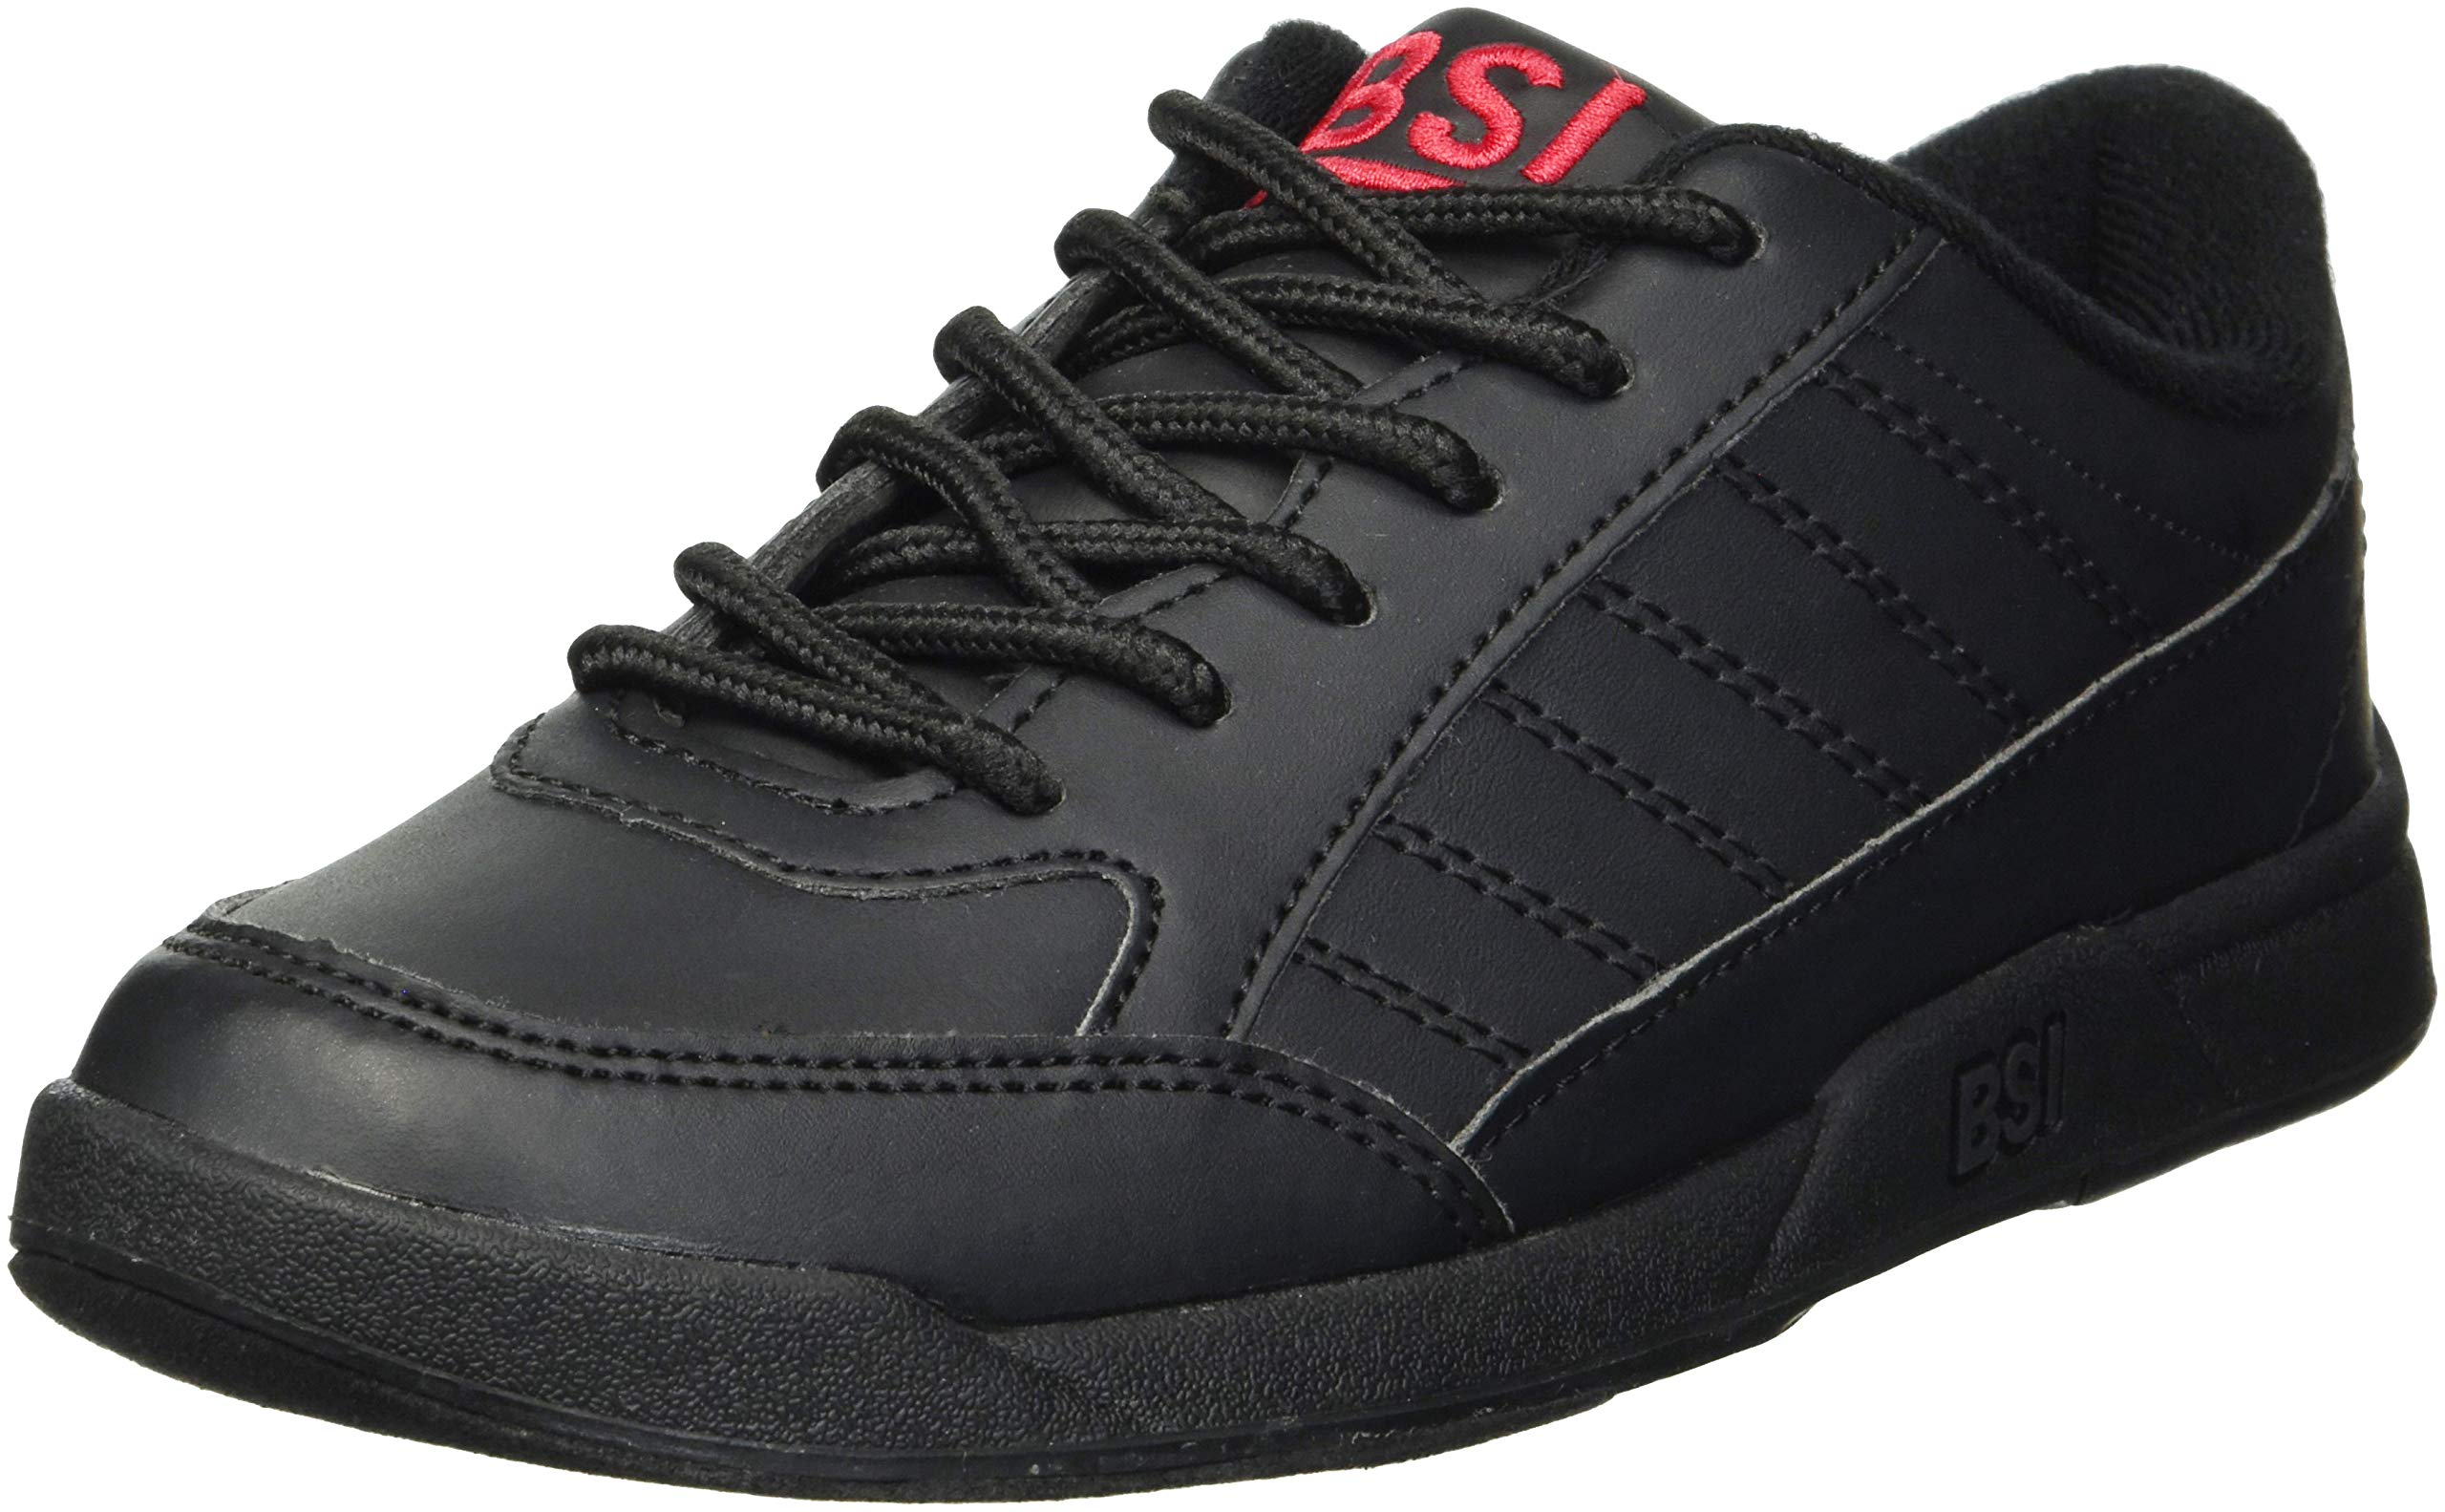 BSI Boy's Basic #533 Bowling Shoes, Black, Size 1.0